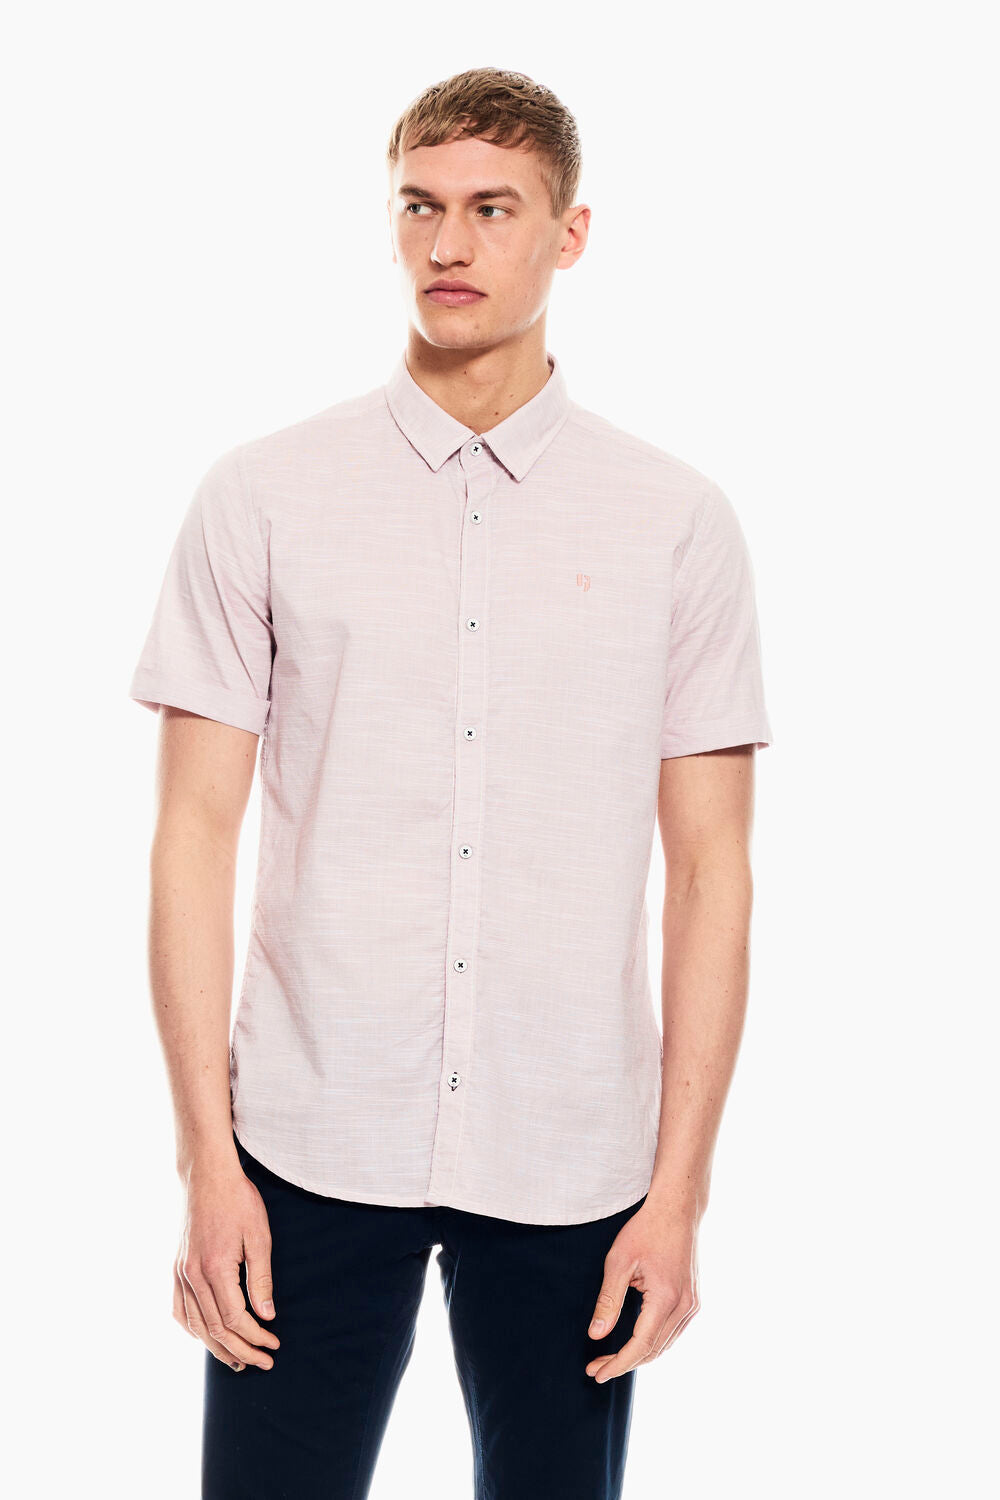 Mens SS Shirt - Light Pink | Shop Garcia at Wallace and Gibbs